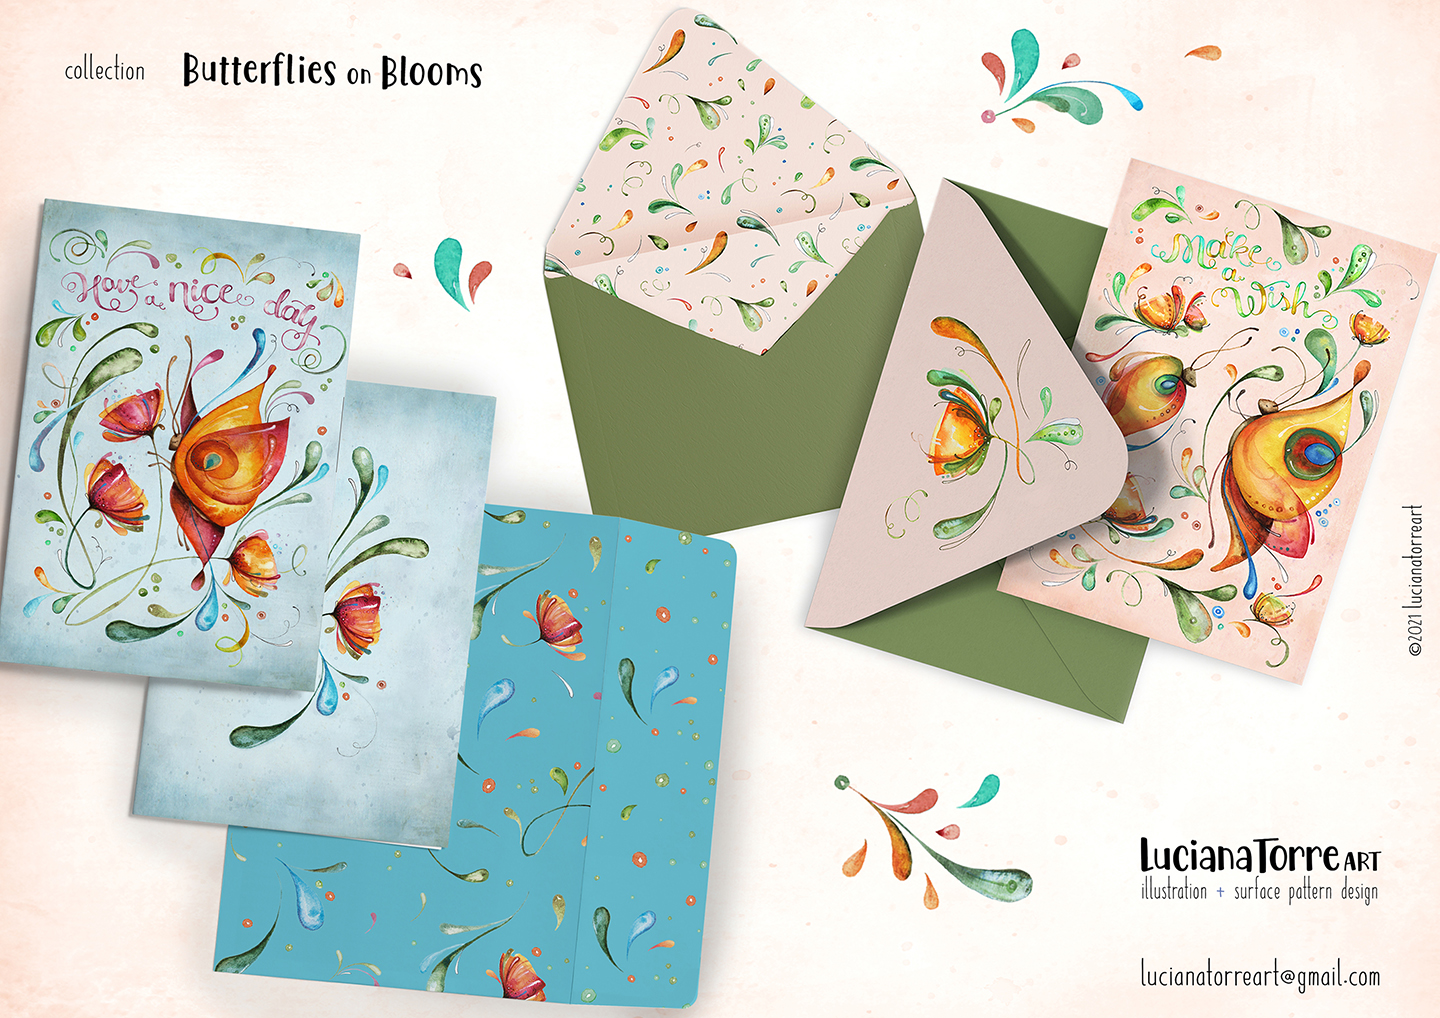 LucianaTorreArt lookbook greeting cards for licensing 16